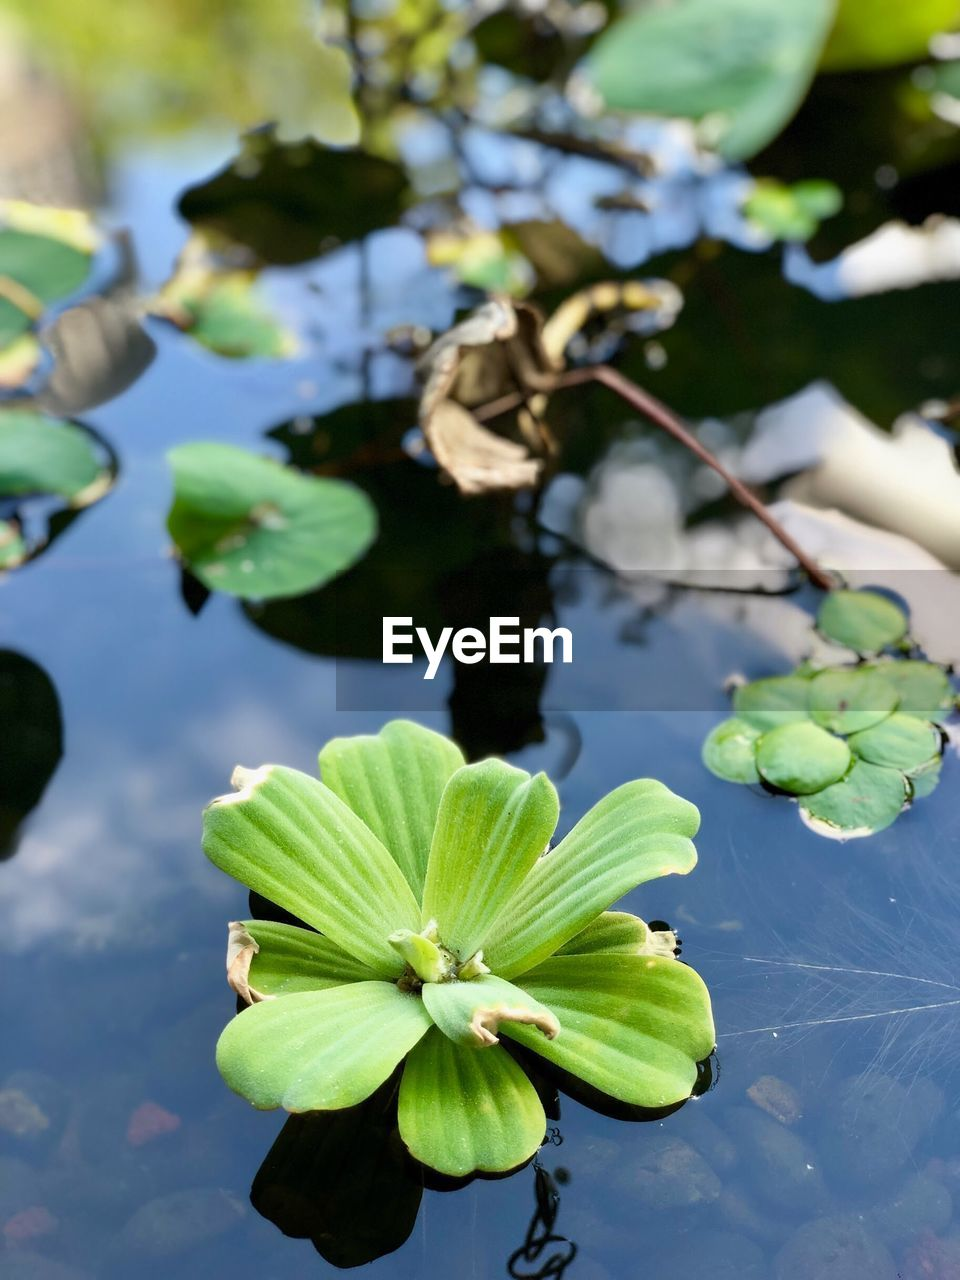 plant, growth, flower, leaf, flowering plant, beauty in nature, plant part, freshness, fragility, nature, vulnerability, green color, day, close-up, focus on foreground, no people, lake, bud, water lily, outdoors, flower head, leaves